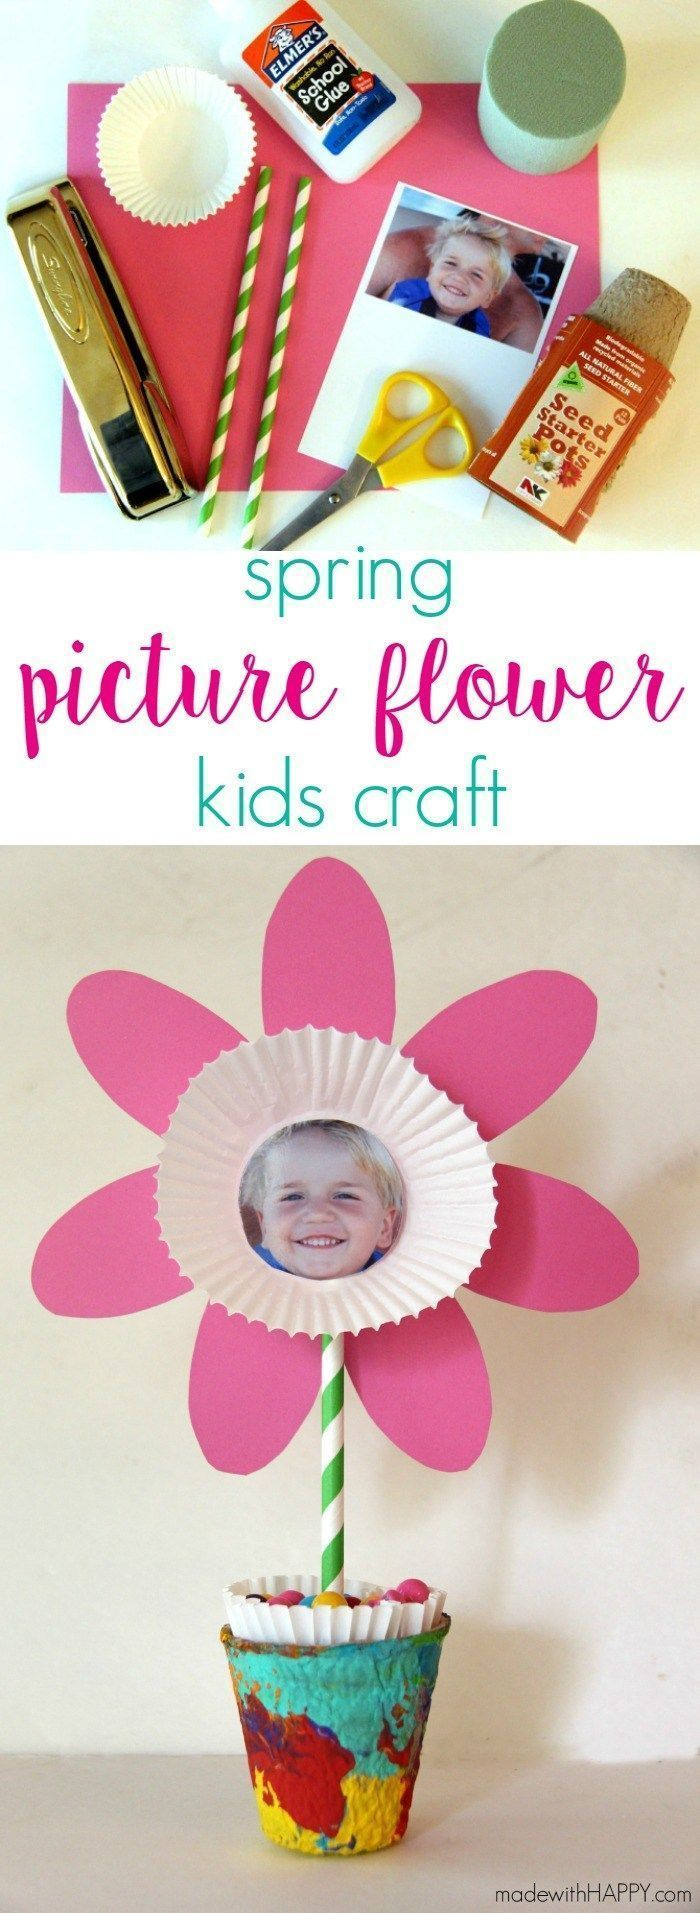 Paper Flower Kids Craft   Cute Picture and Free Printable Flower Craft   Perfect Mother's Day Kids Craft   Spring Flower Kids Craft   http://www.madewithHAPPY.com